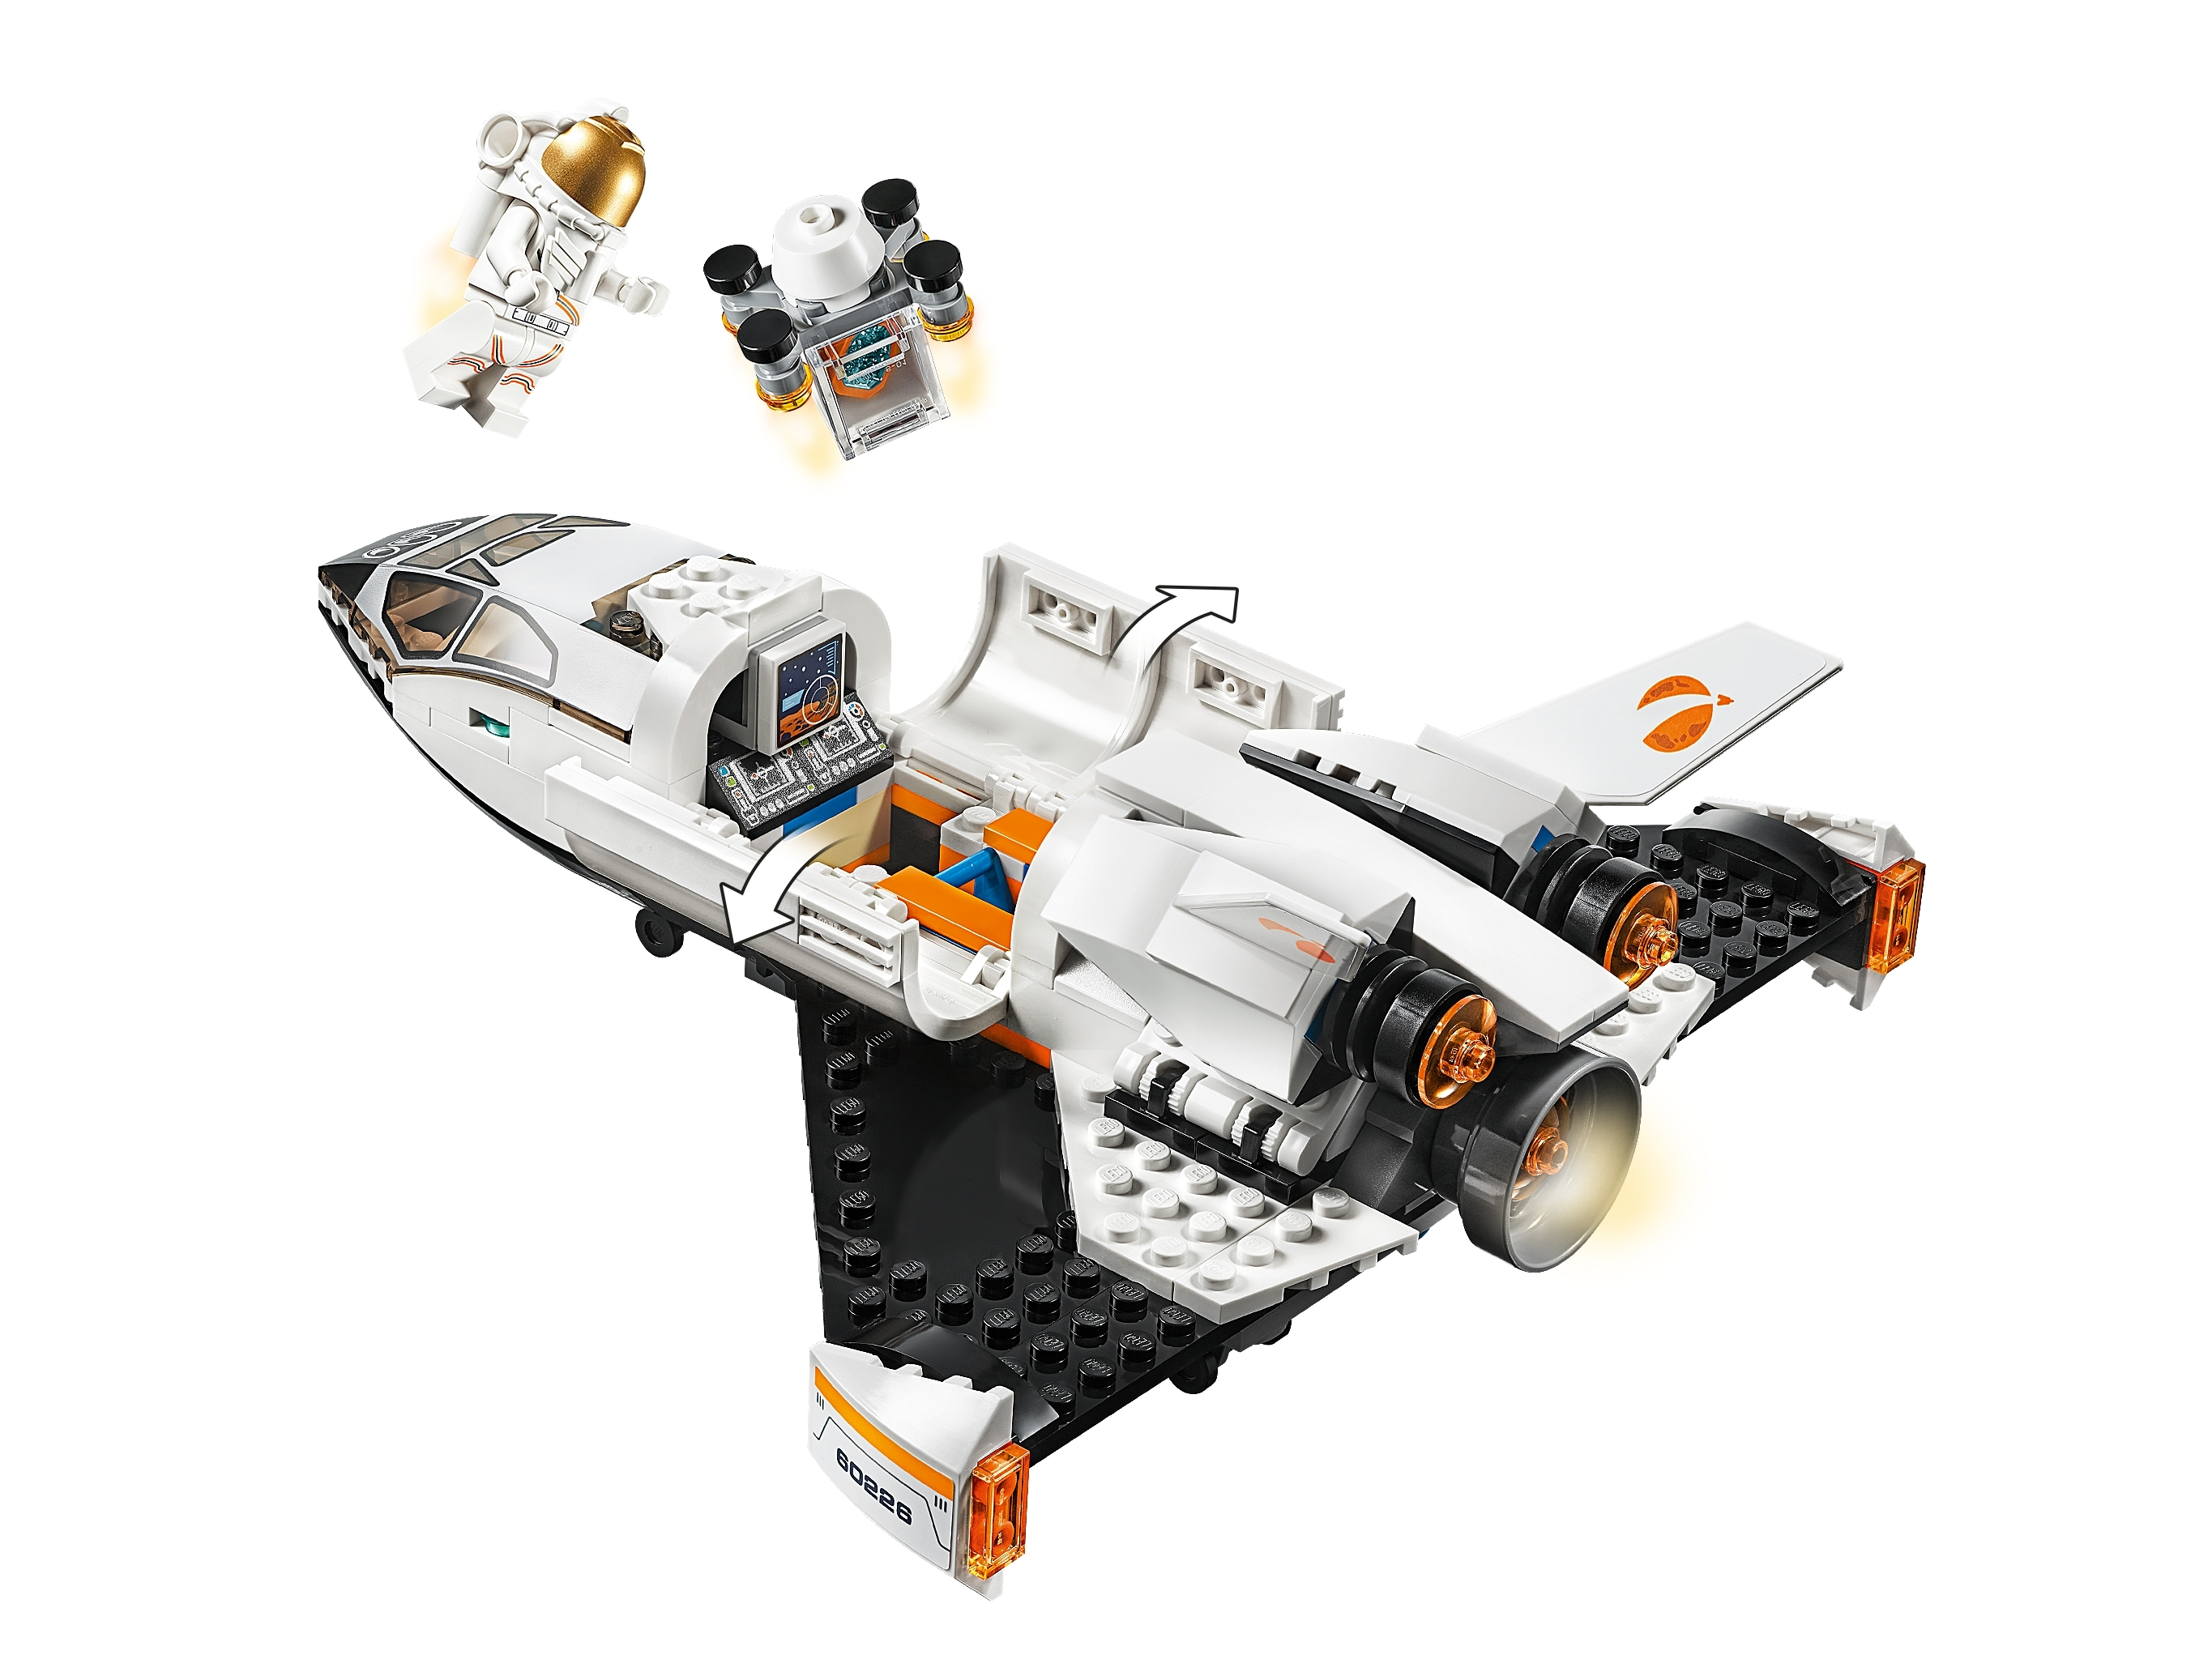 NEW LEGO CITY 60226 Mars Research Shuttle NASA Space Exploration Astronaut Rover